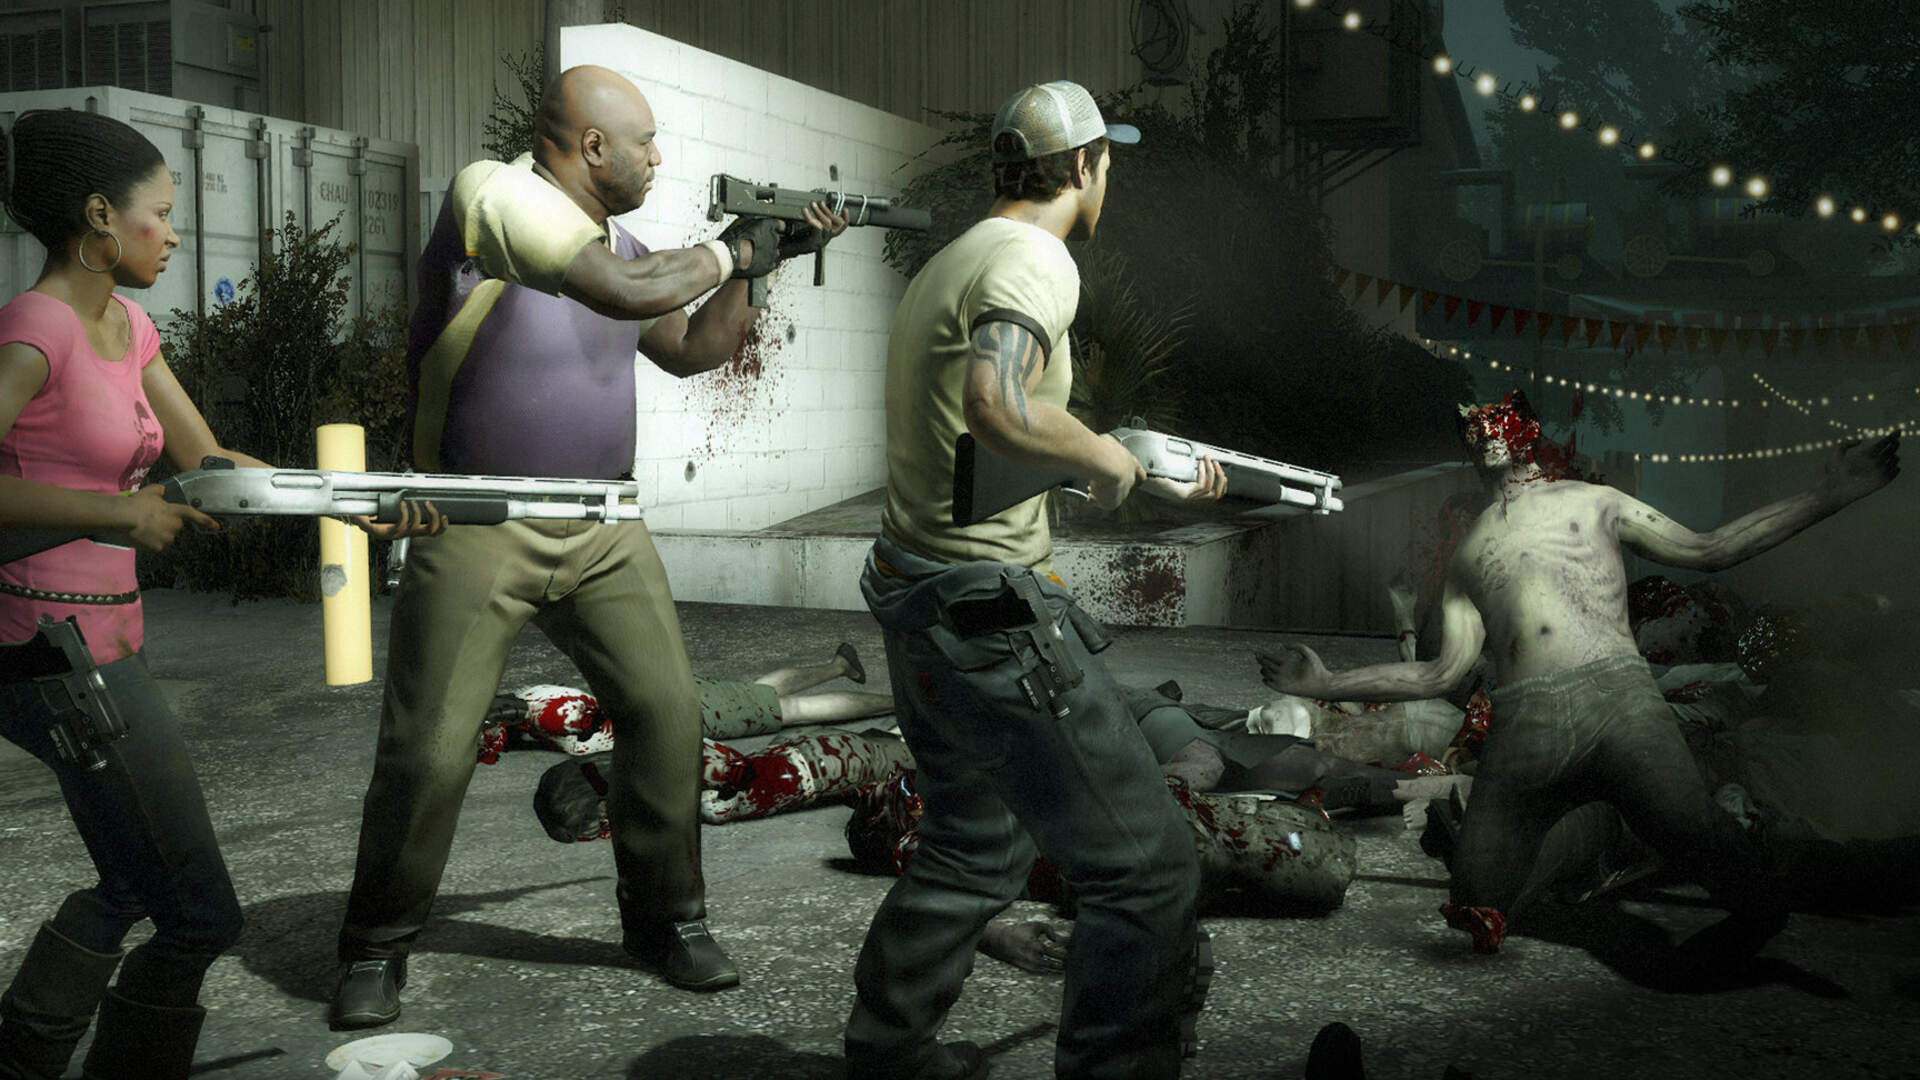 HTC Vive Exec Seems to Suggest Left 4 Dead 3 is Happening, Valve Pushes Back Hard